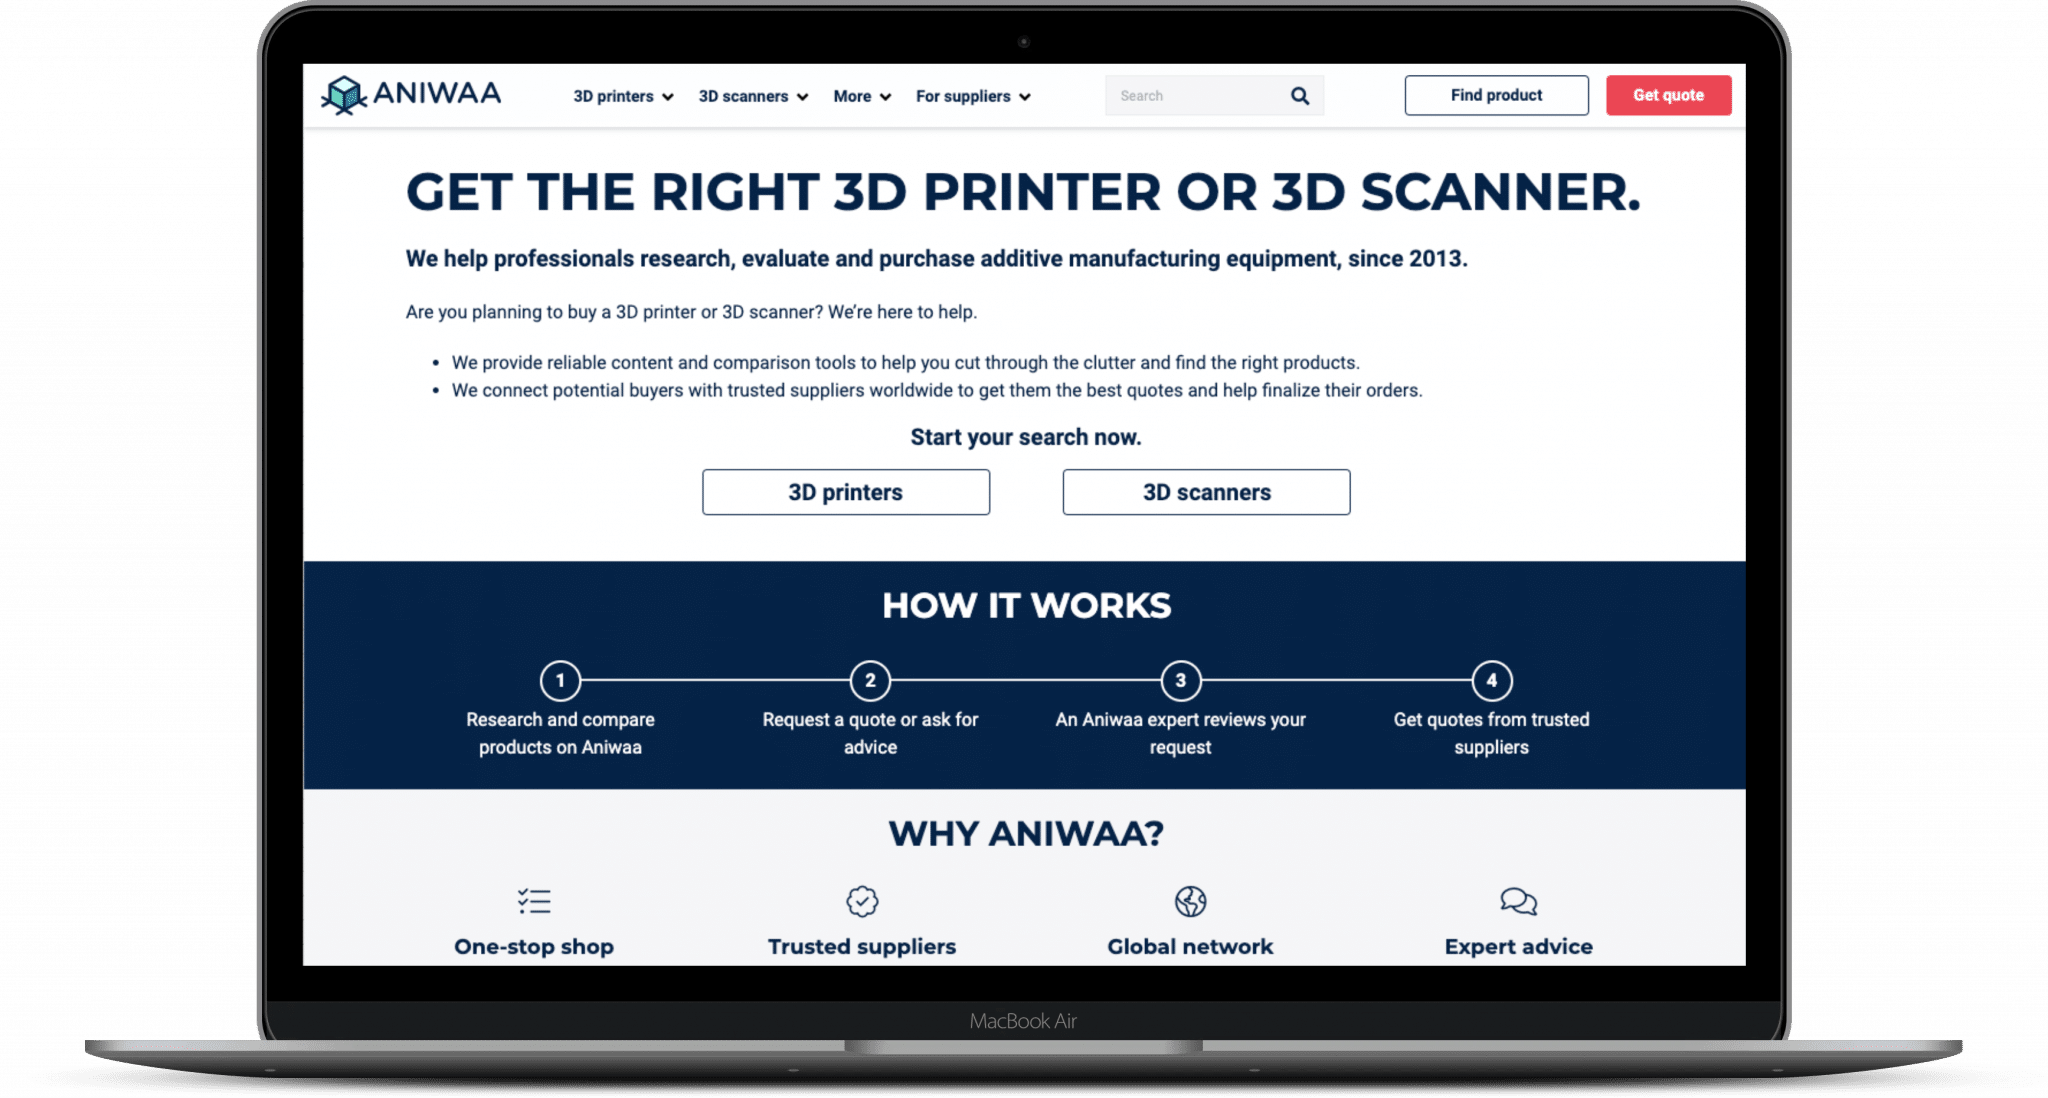 Aniwaa Launches New 3d Printer Comparison Platform 3d Printing Media Network